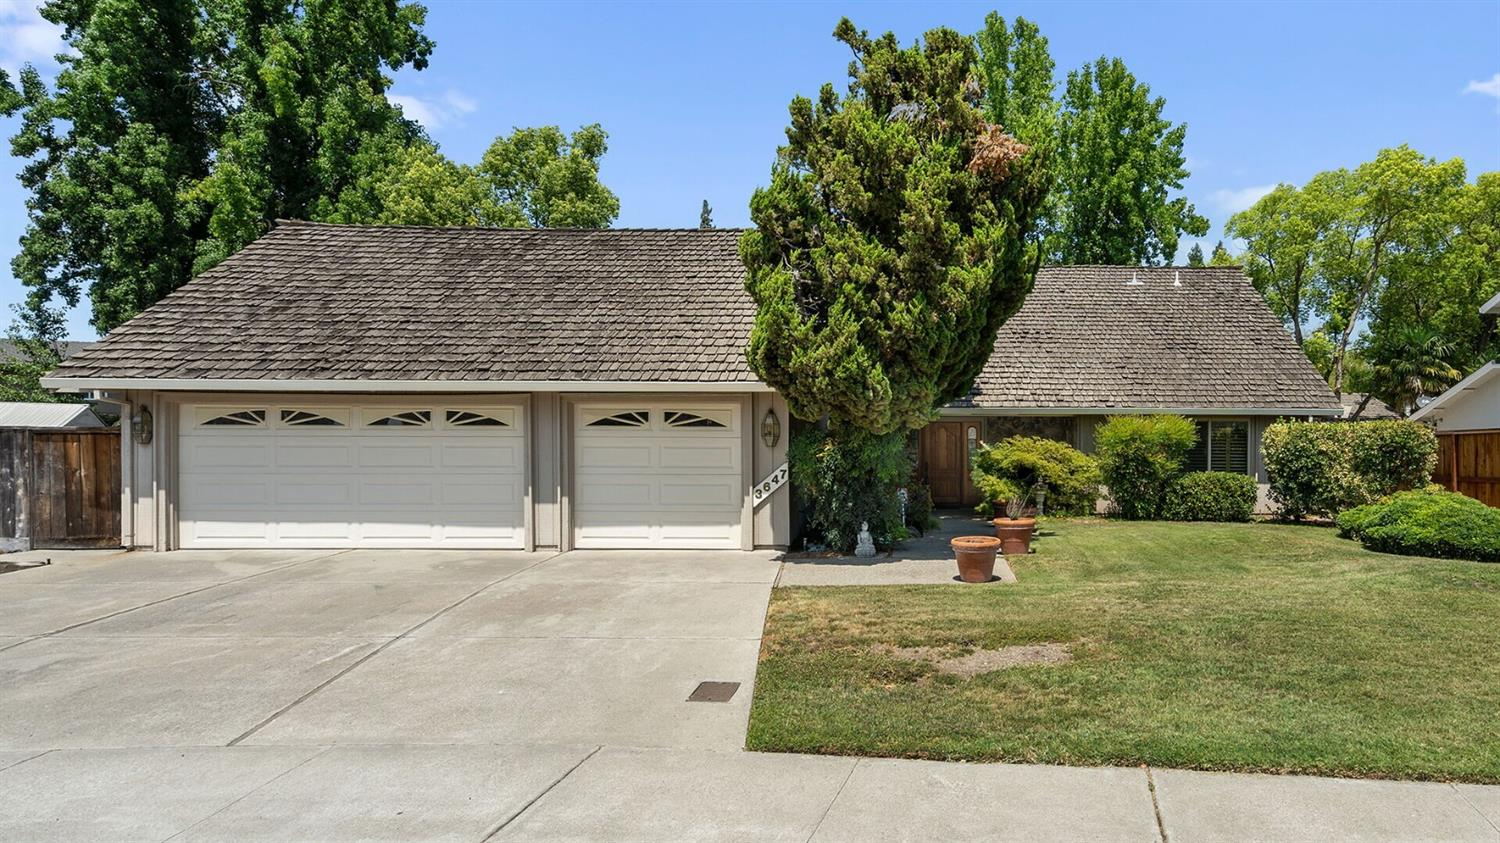 Photo of 3647 Moultrie Drive, Stockton, CA 95219